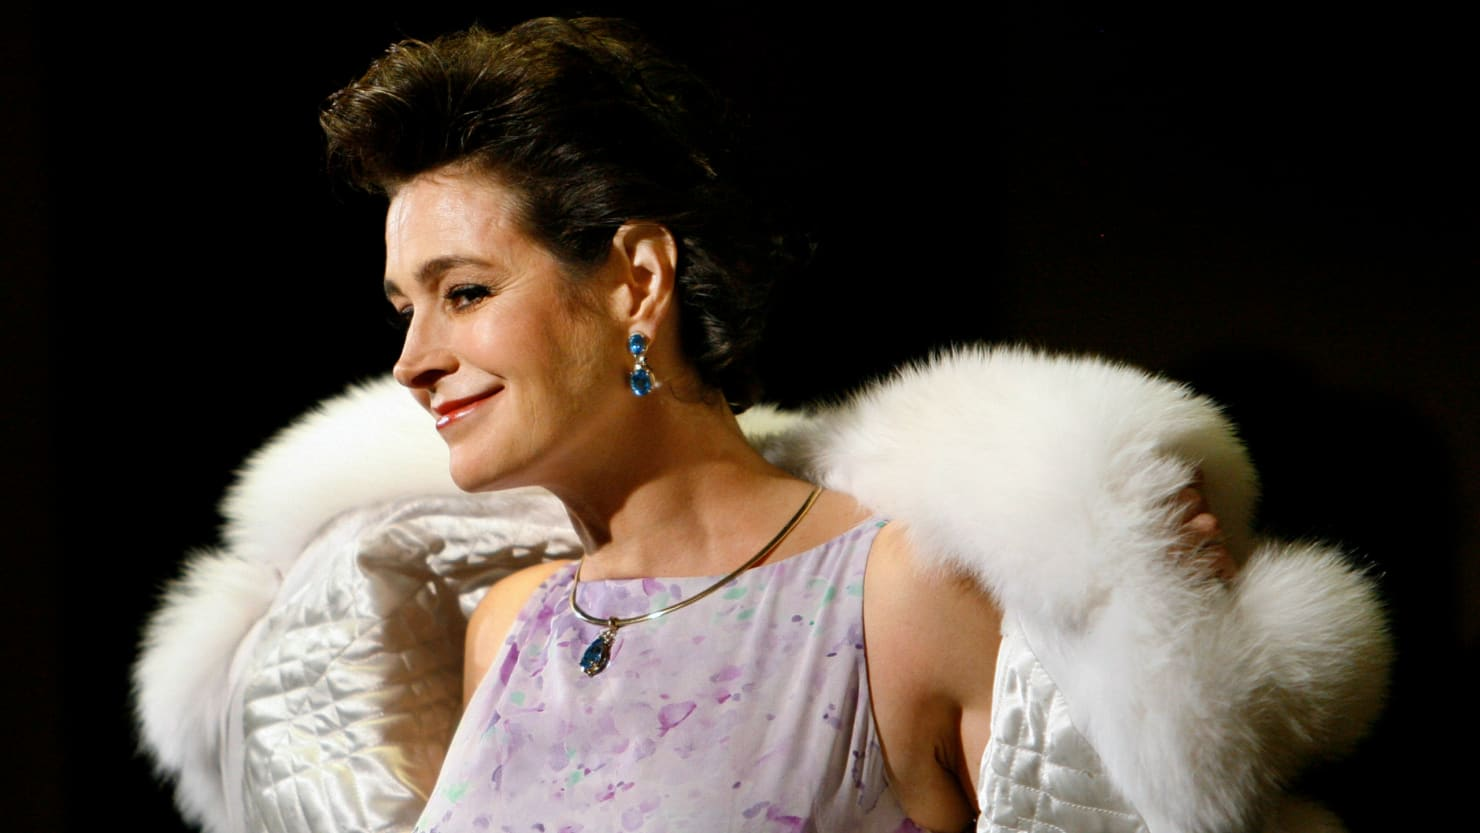 Sean Young Blade Runner Actress Wanted For Questioning